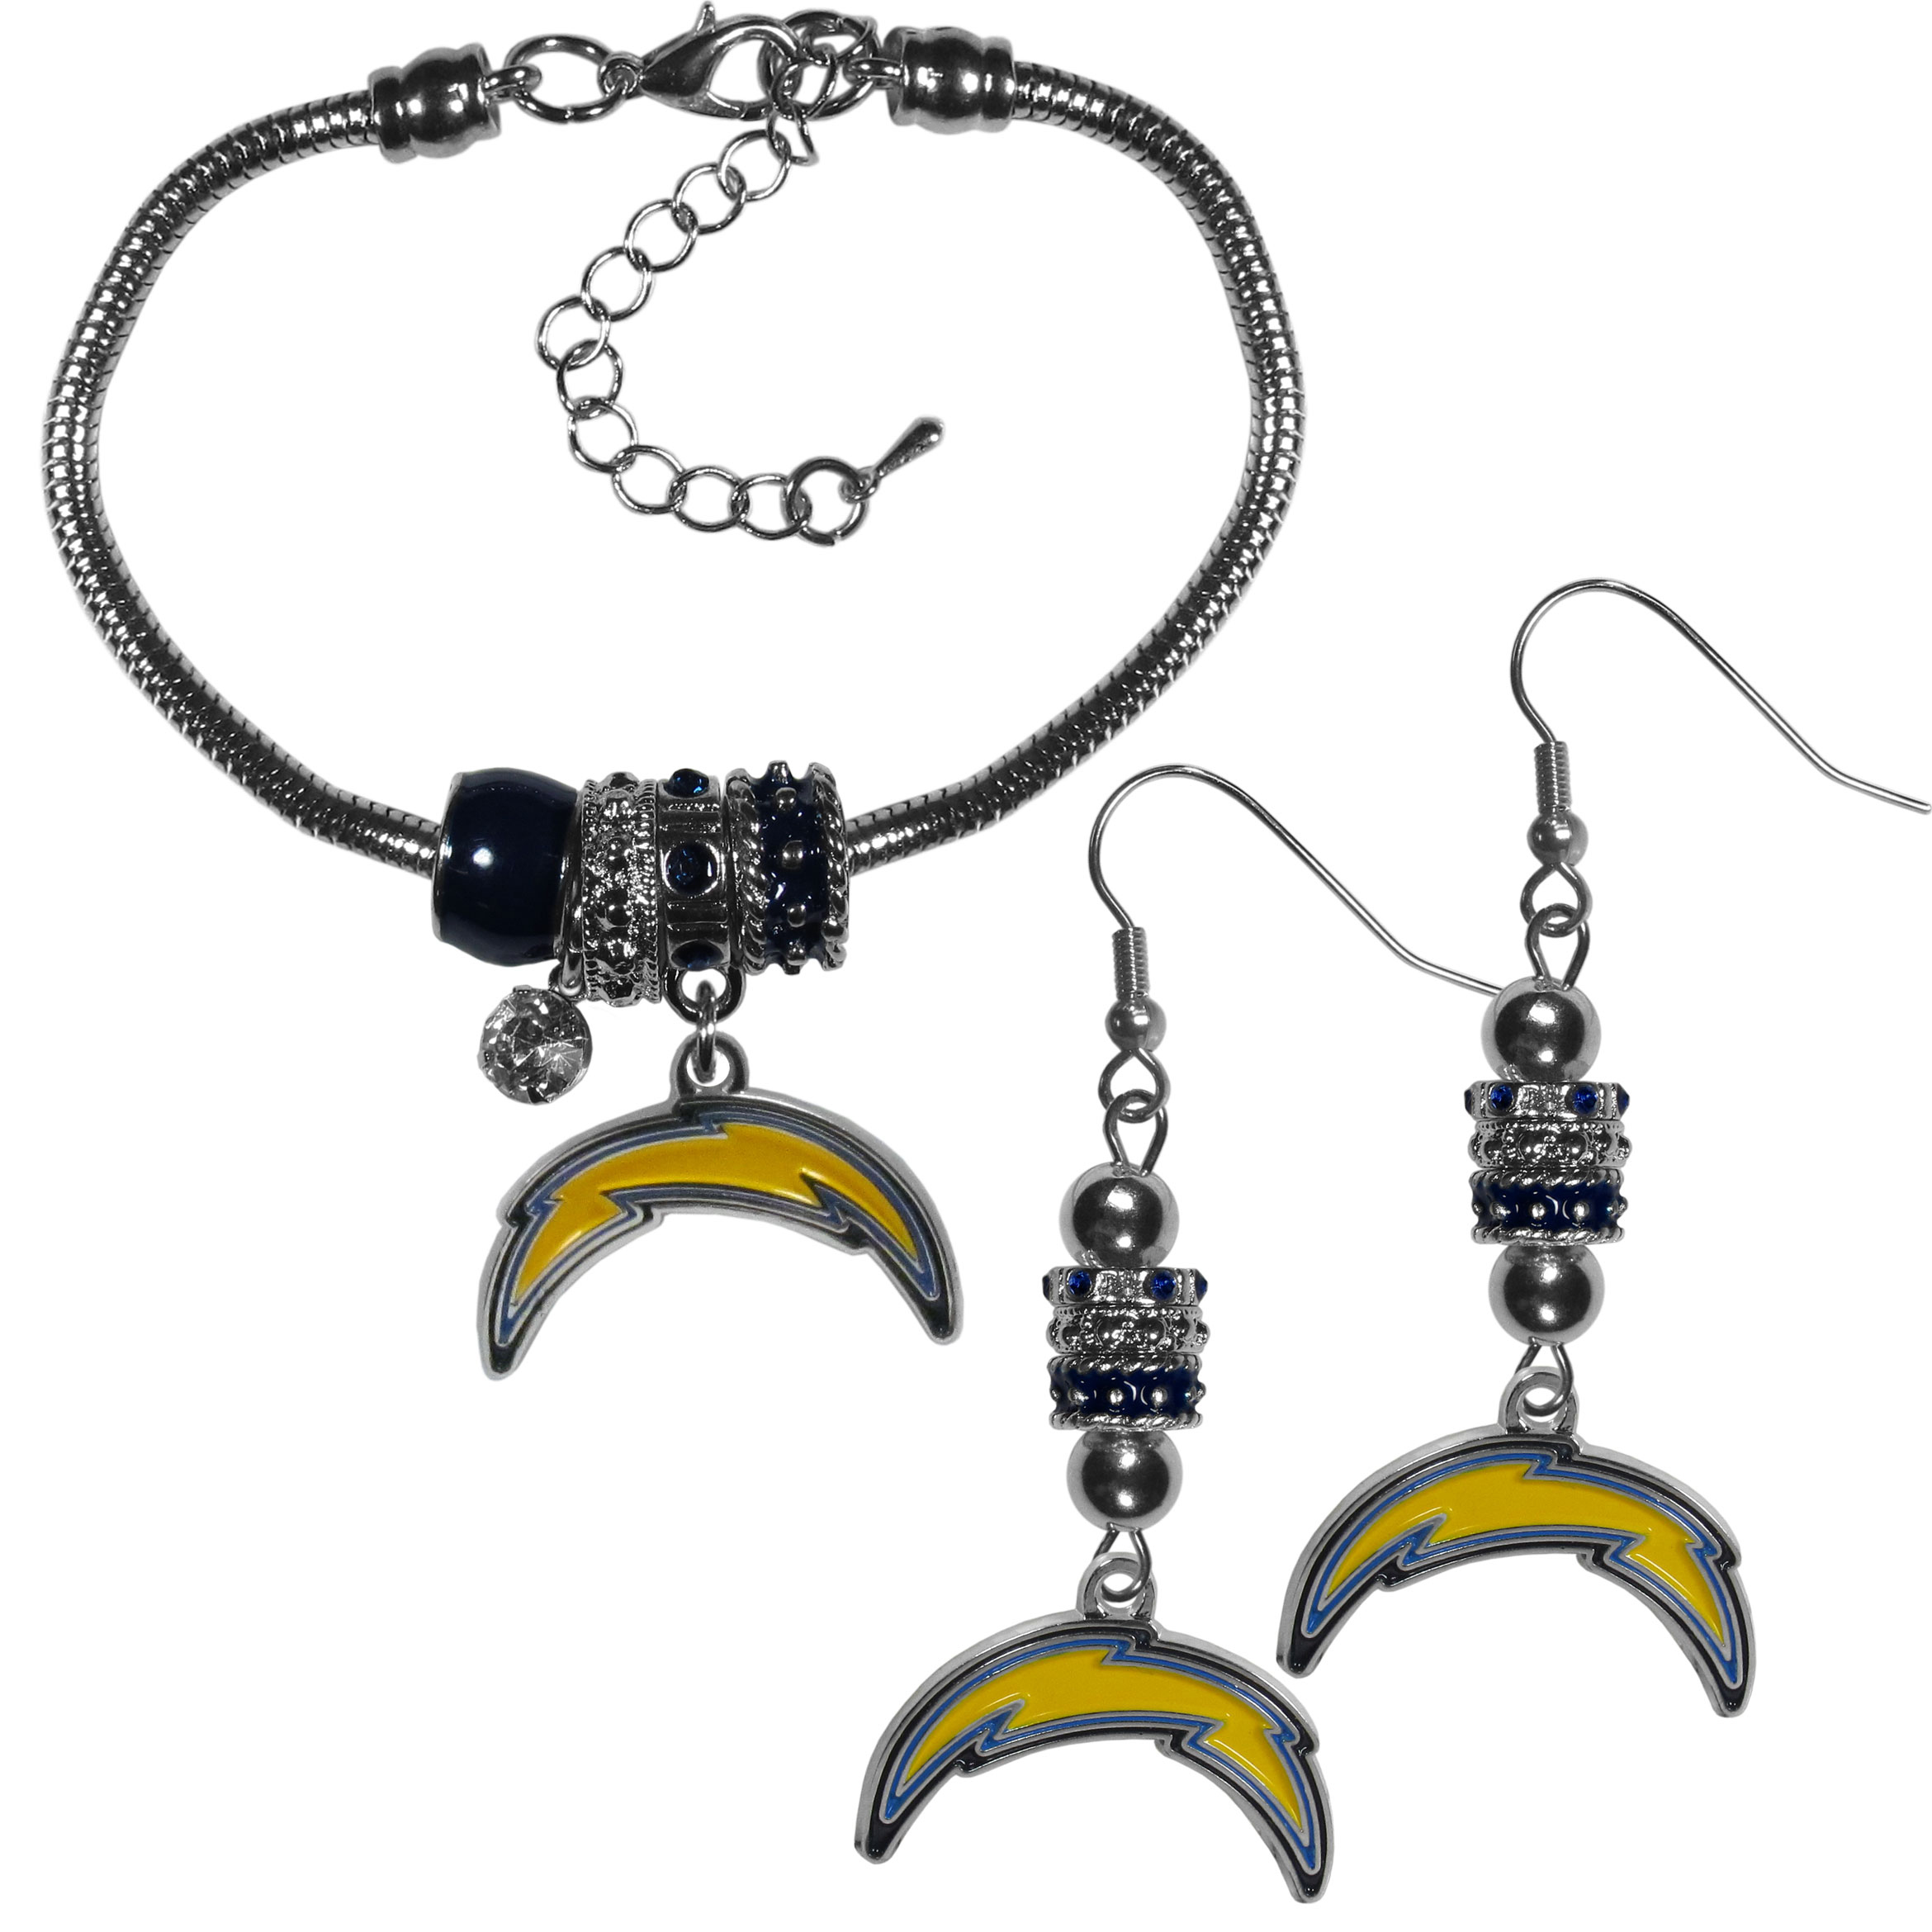 Los Angeles Chargers Euro Bead Earrings and Bracelet Set - We combine the popular Euro bead style with your love of the Los Angeles Chargers with this beautiful jewelry set that includes earrings and a matching bracelet. The stylish earrings feature hypoallergenic, nickel free fishhook posts and 3 team colored Euro beads and a metal team charm. The matching snake chain bracelet is 7.5 inches long with a 2 inch extender and 4 Euro beads with a rhinestone charm and team charm.